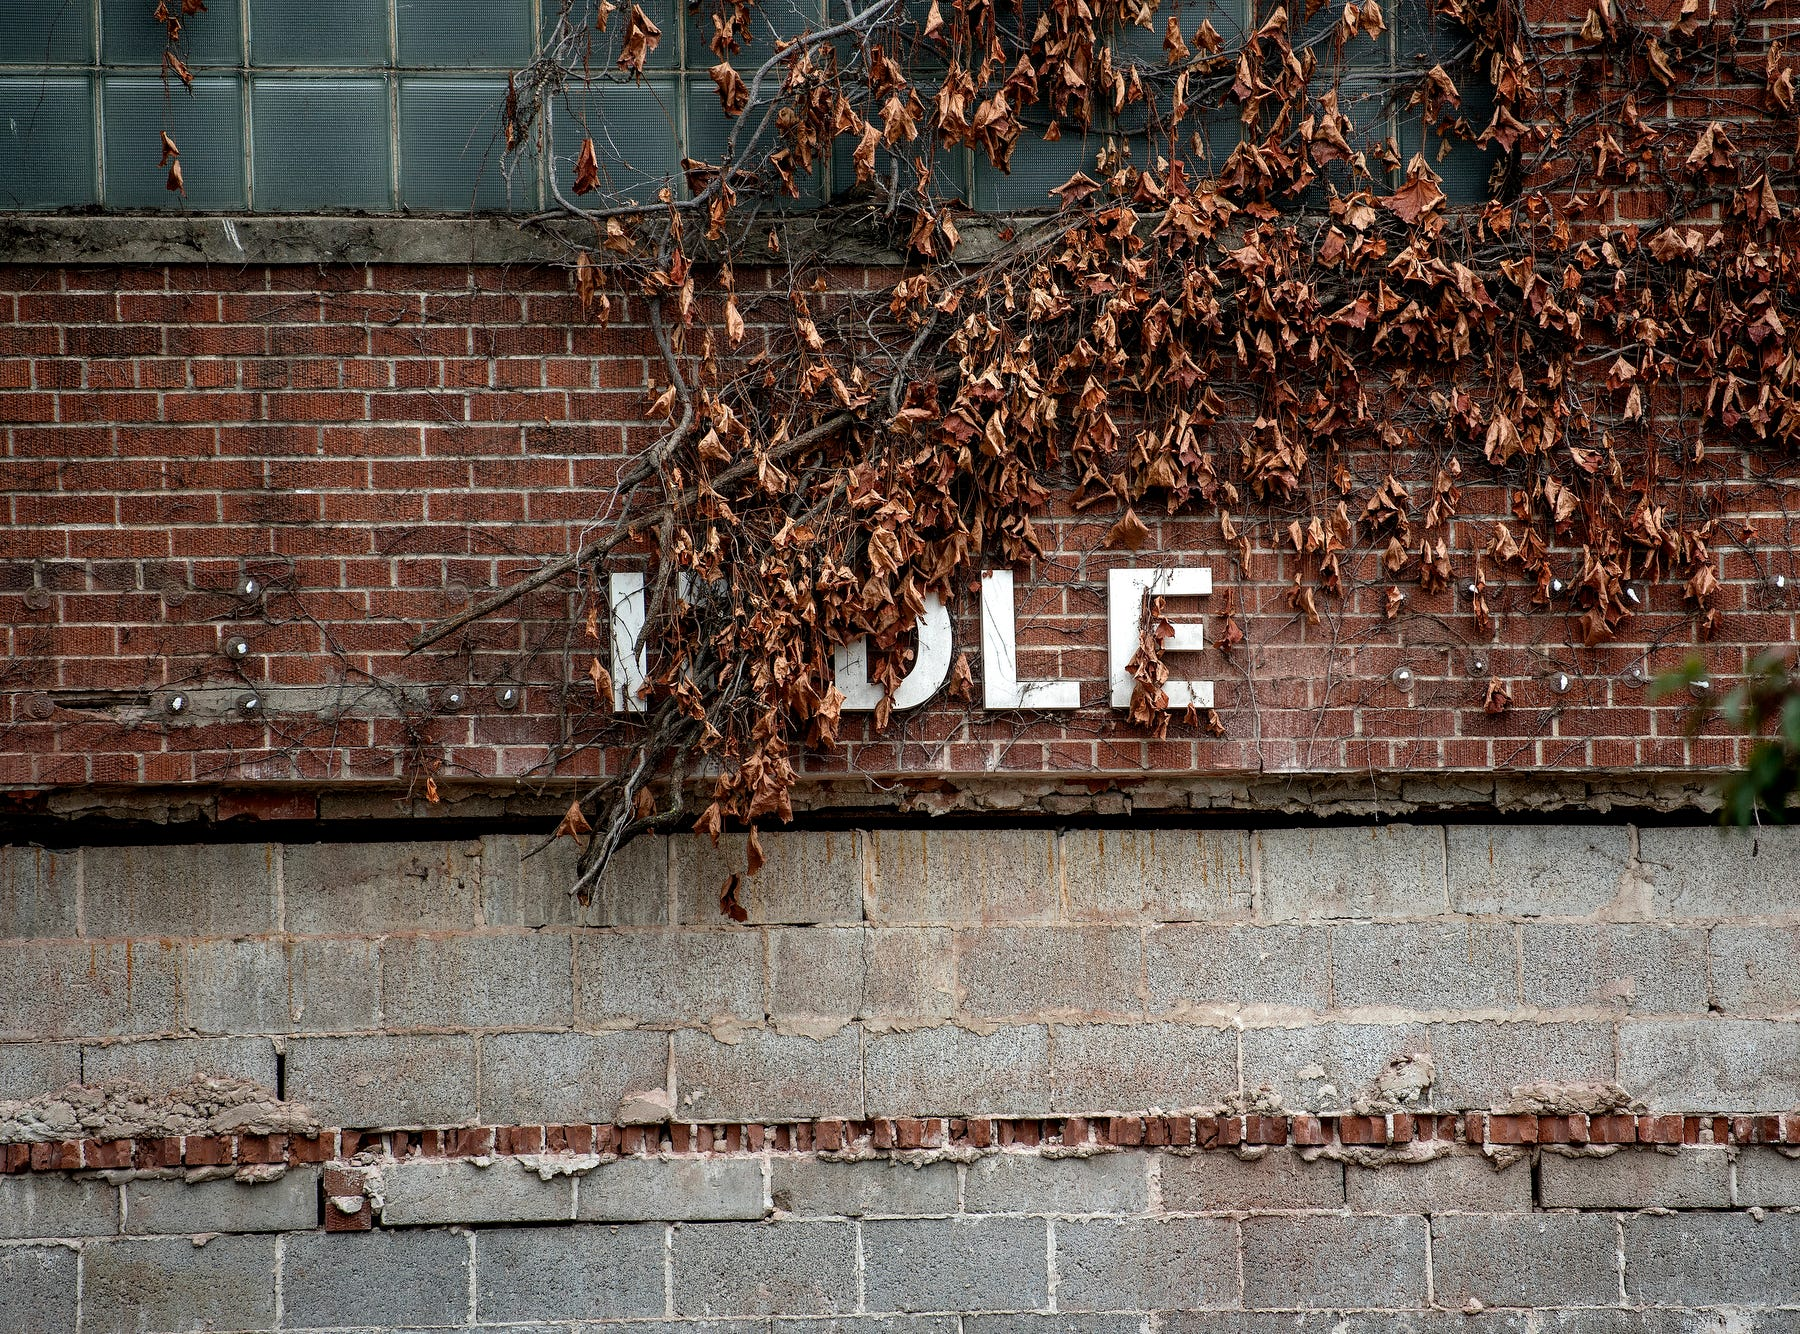 A few letters of the word 'middle' remain on the facade of the old Dansville Middle School during the school's demolition on Monday, July 23, 2018, in Dansville. The building is being razed as a result of the district's 2016 millage, which is funding the demolition as well as the construction of a new high school.